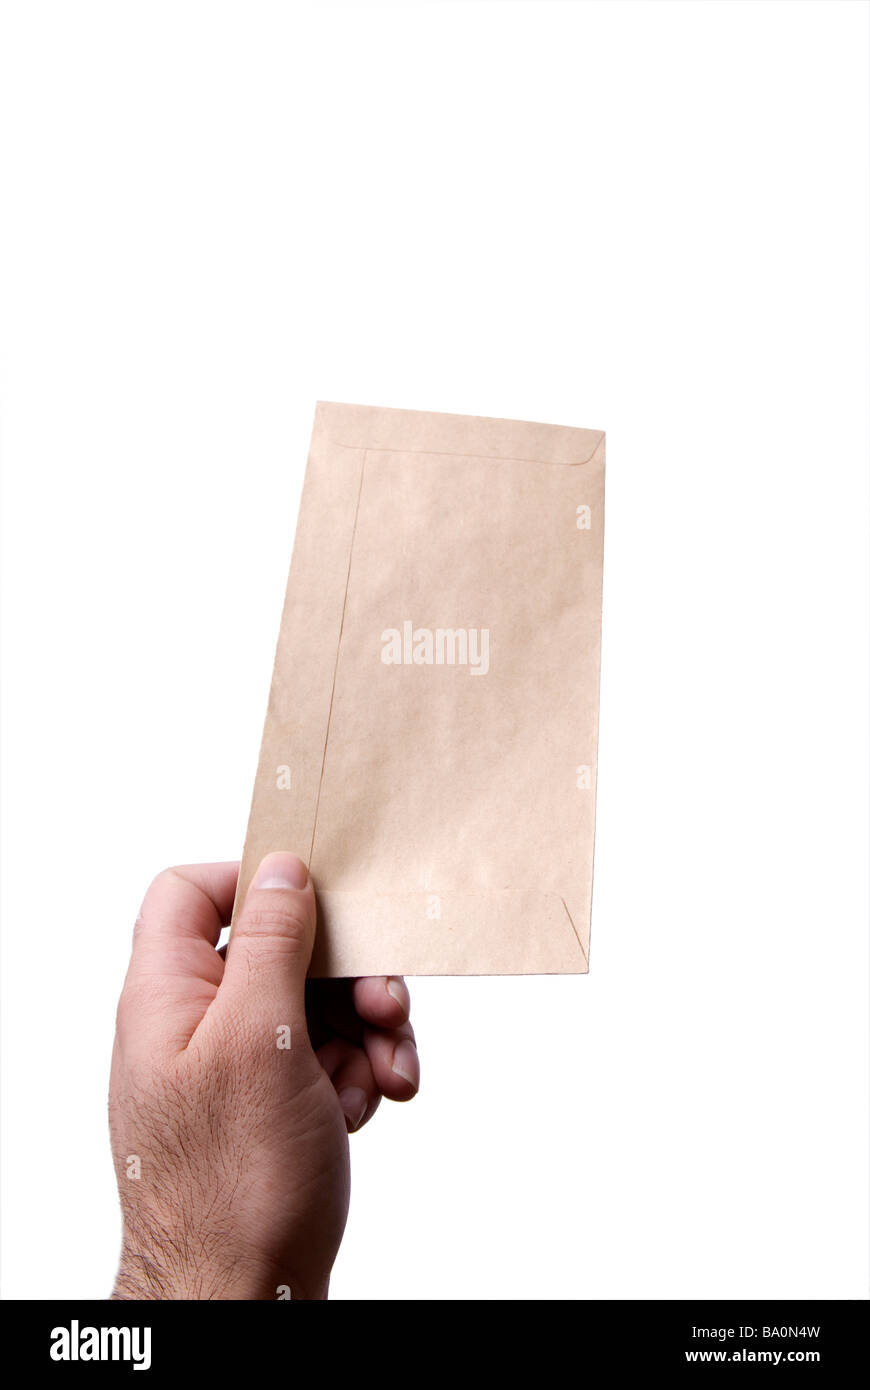 Hand holding a brown envelope against a white background - Stock Image